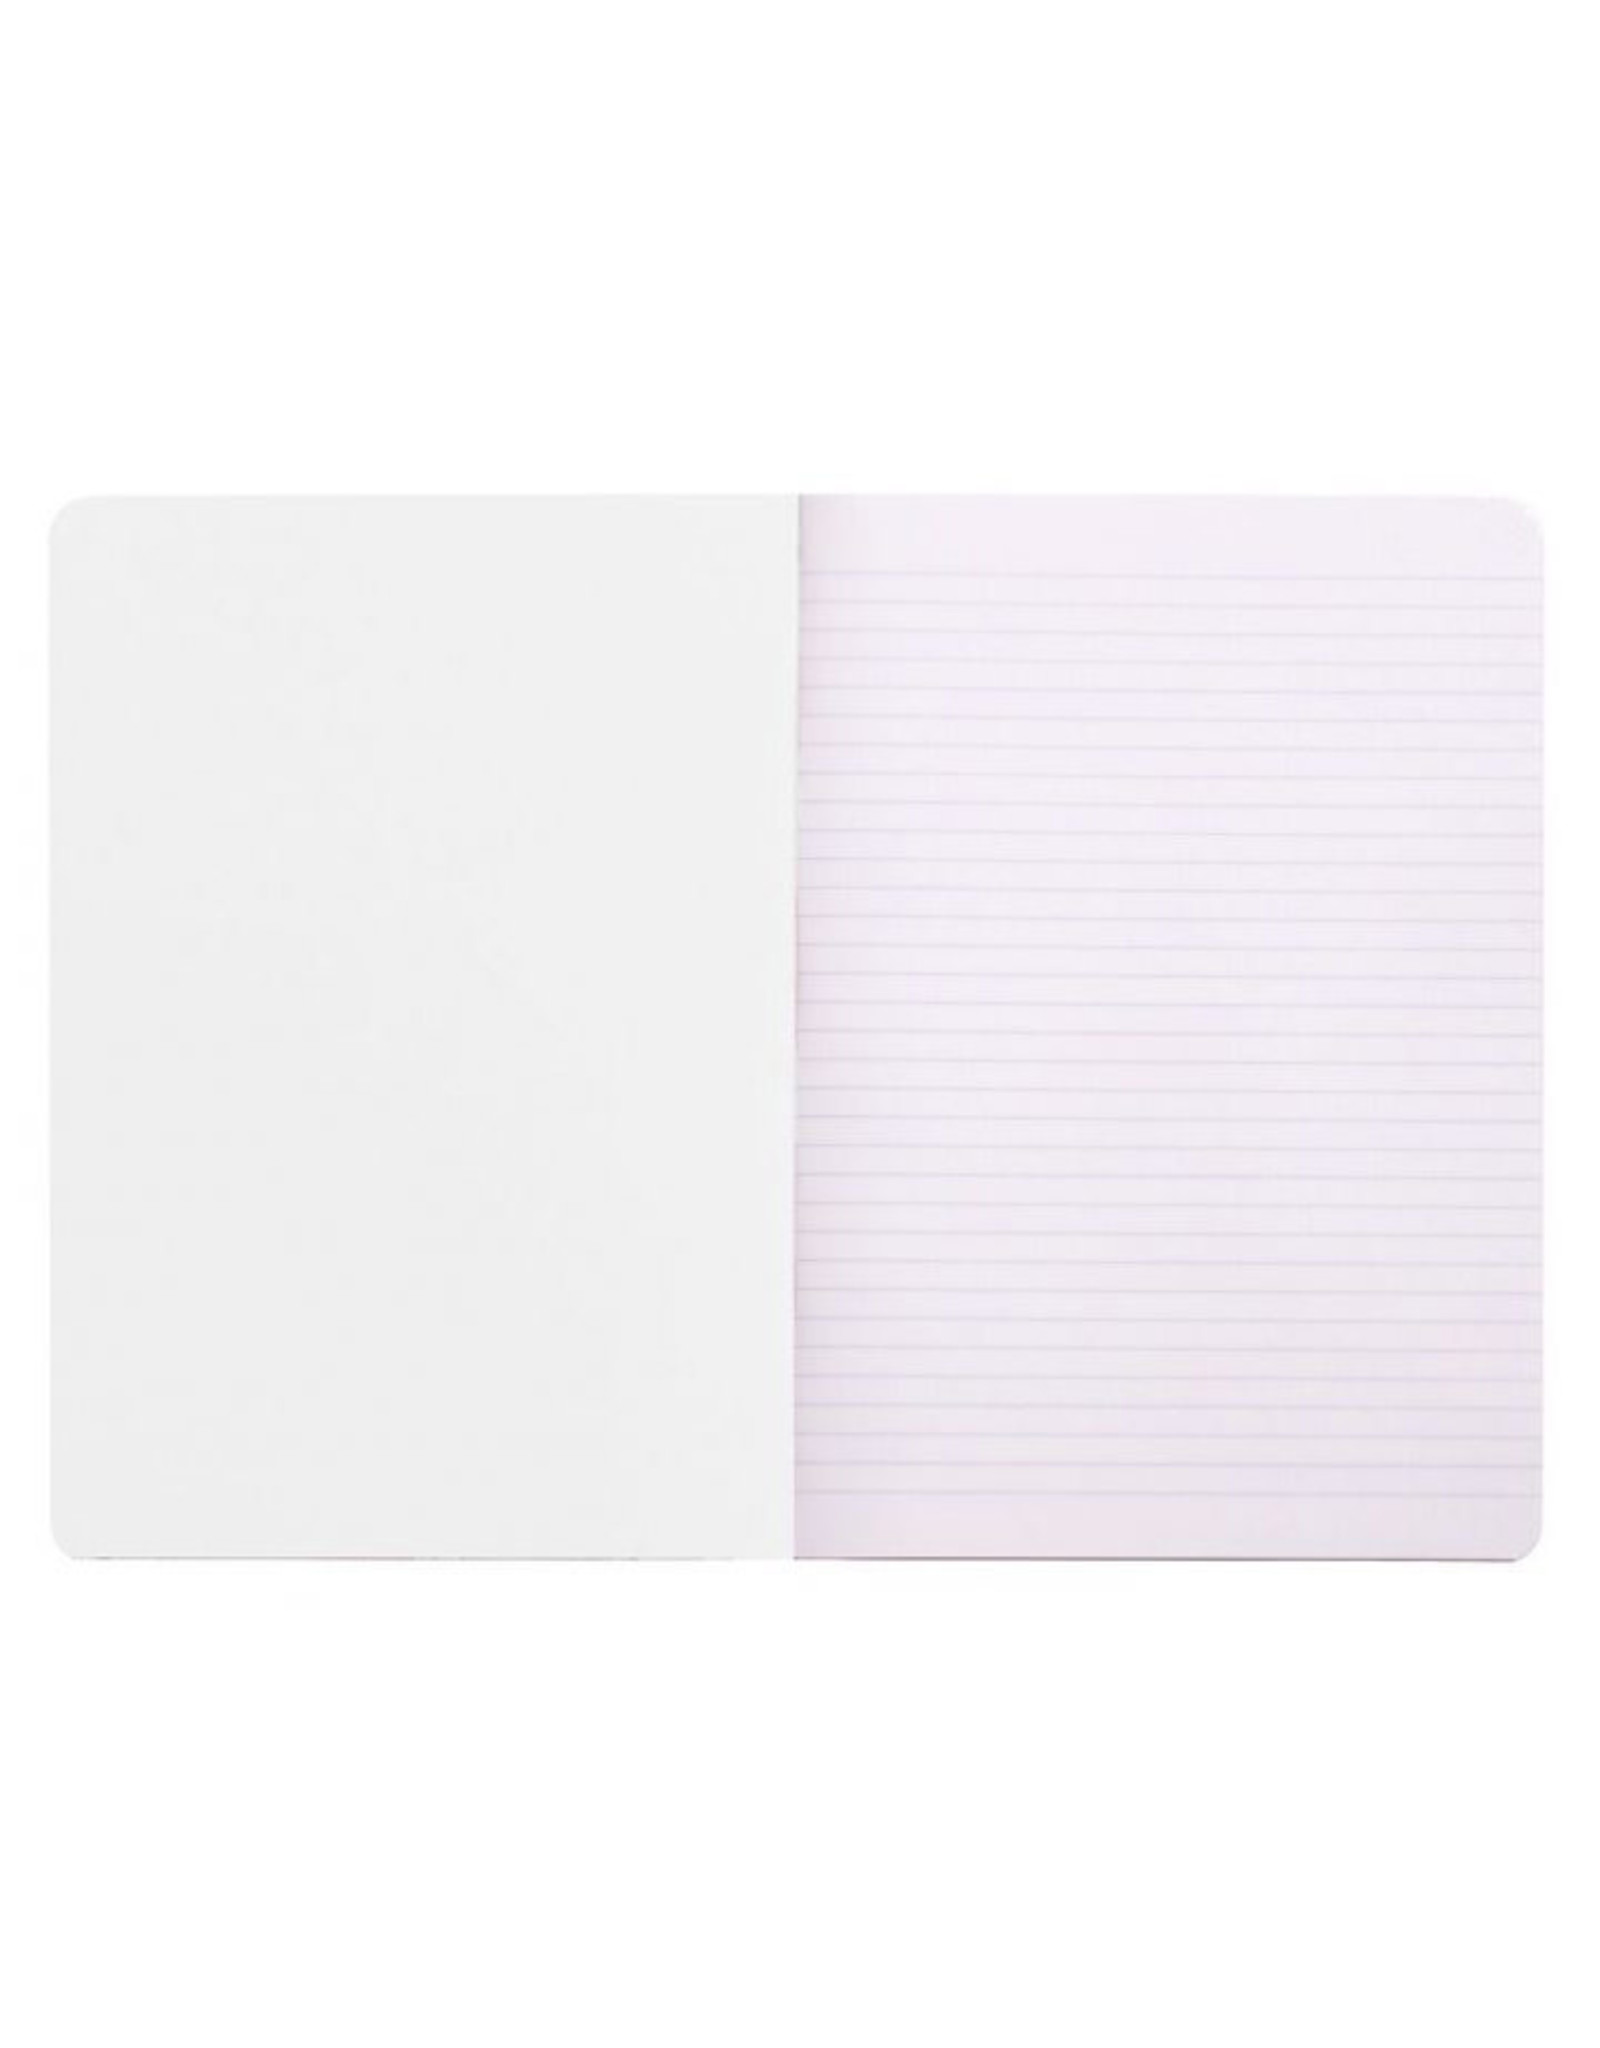 Rhodia Rhodia White ICE Lined Classic Notebook 6 x 8.25